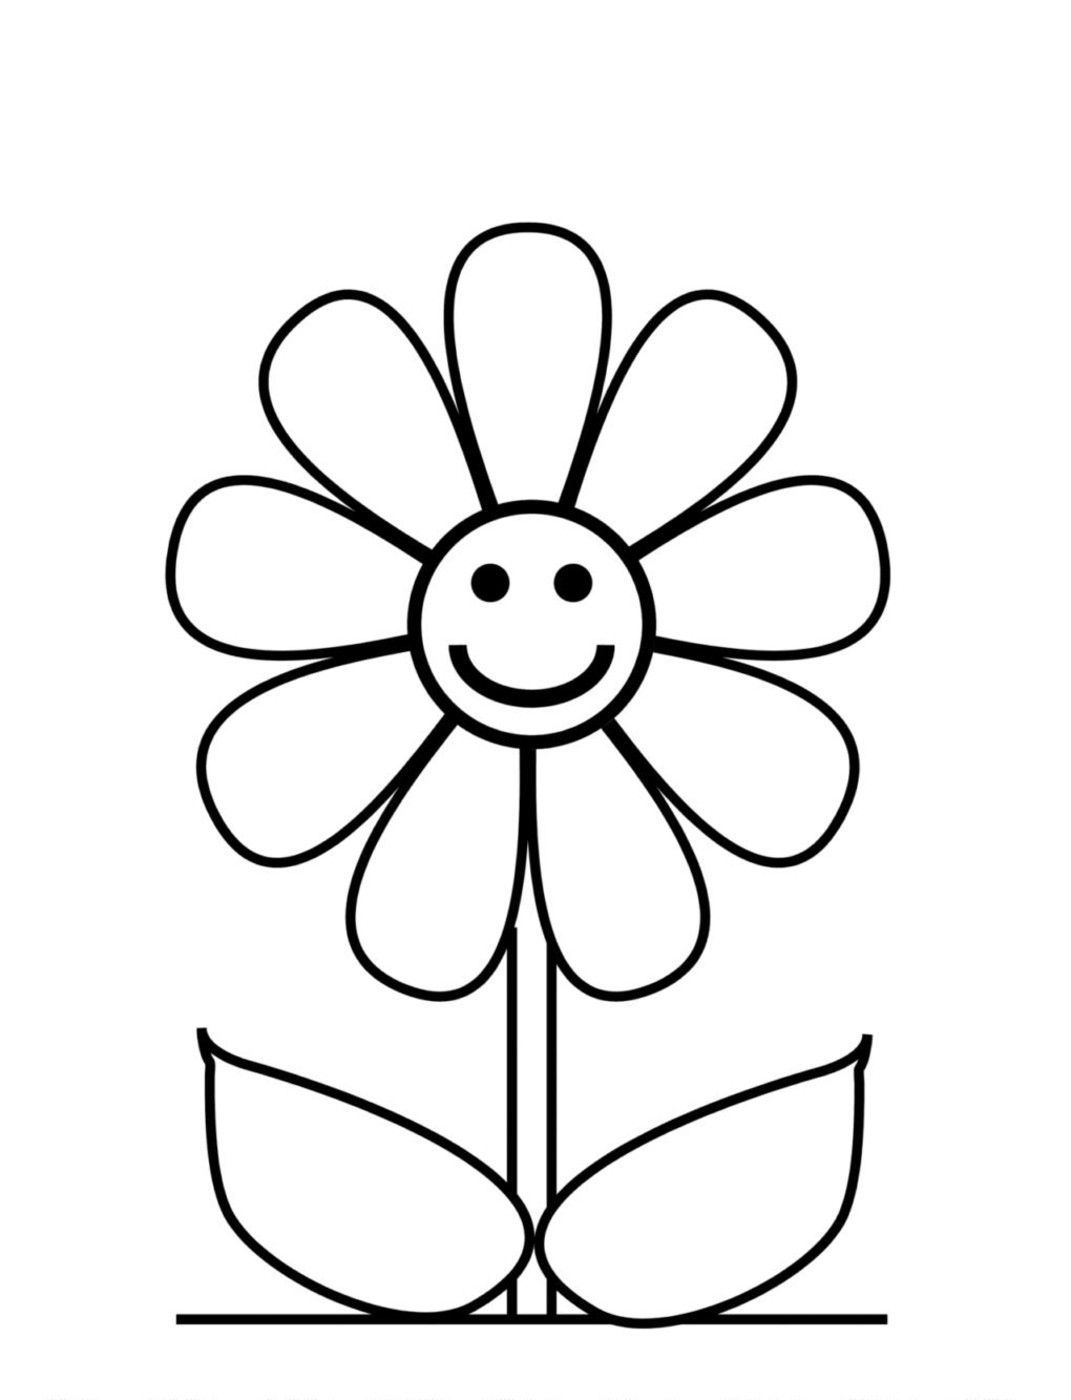 Coloring Pages For Girls Flower Town In Bunga Kartun Fotografi Editorial